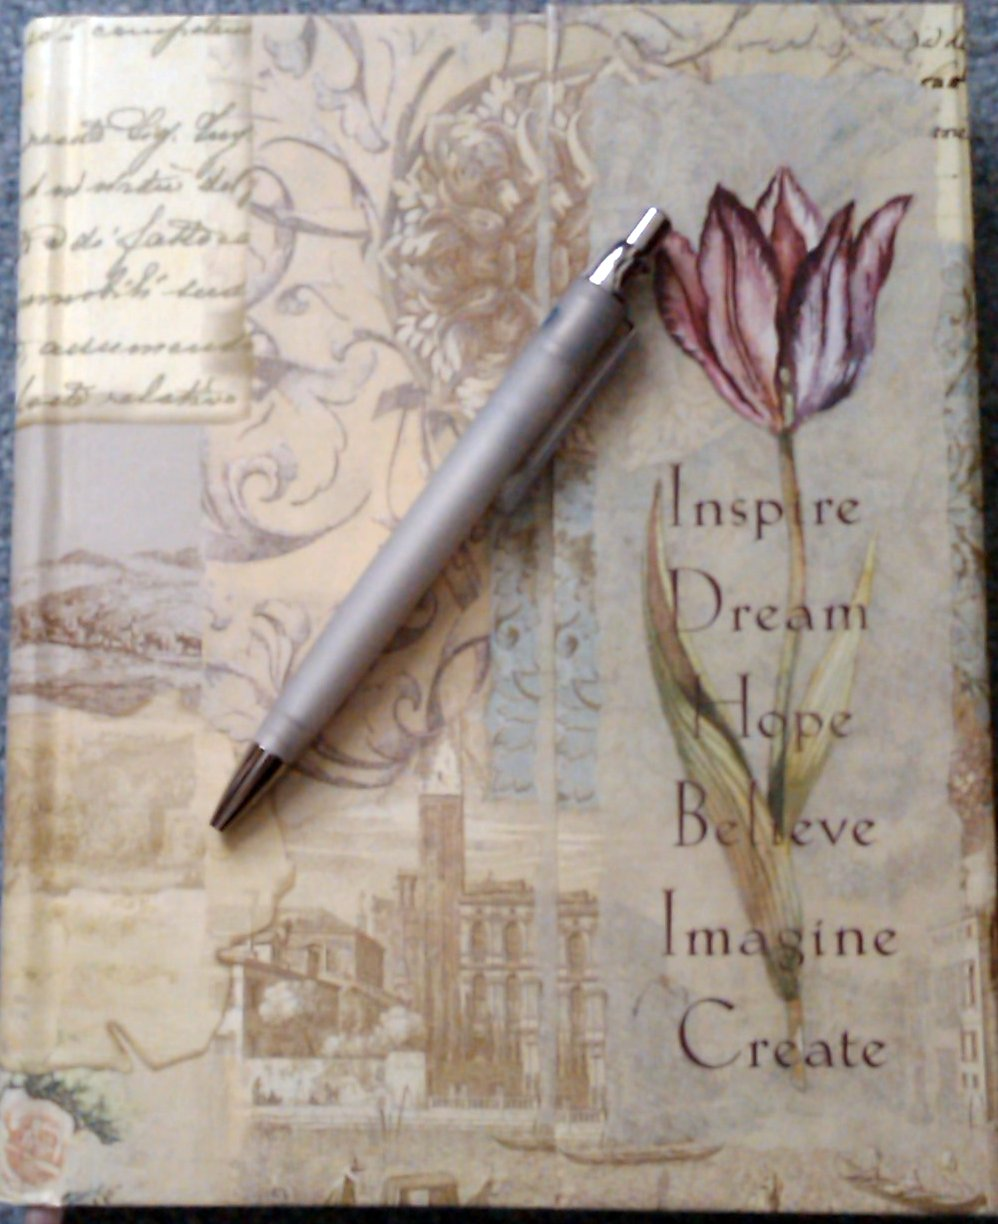 Things to Know about 21 Days of Journaling in June